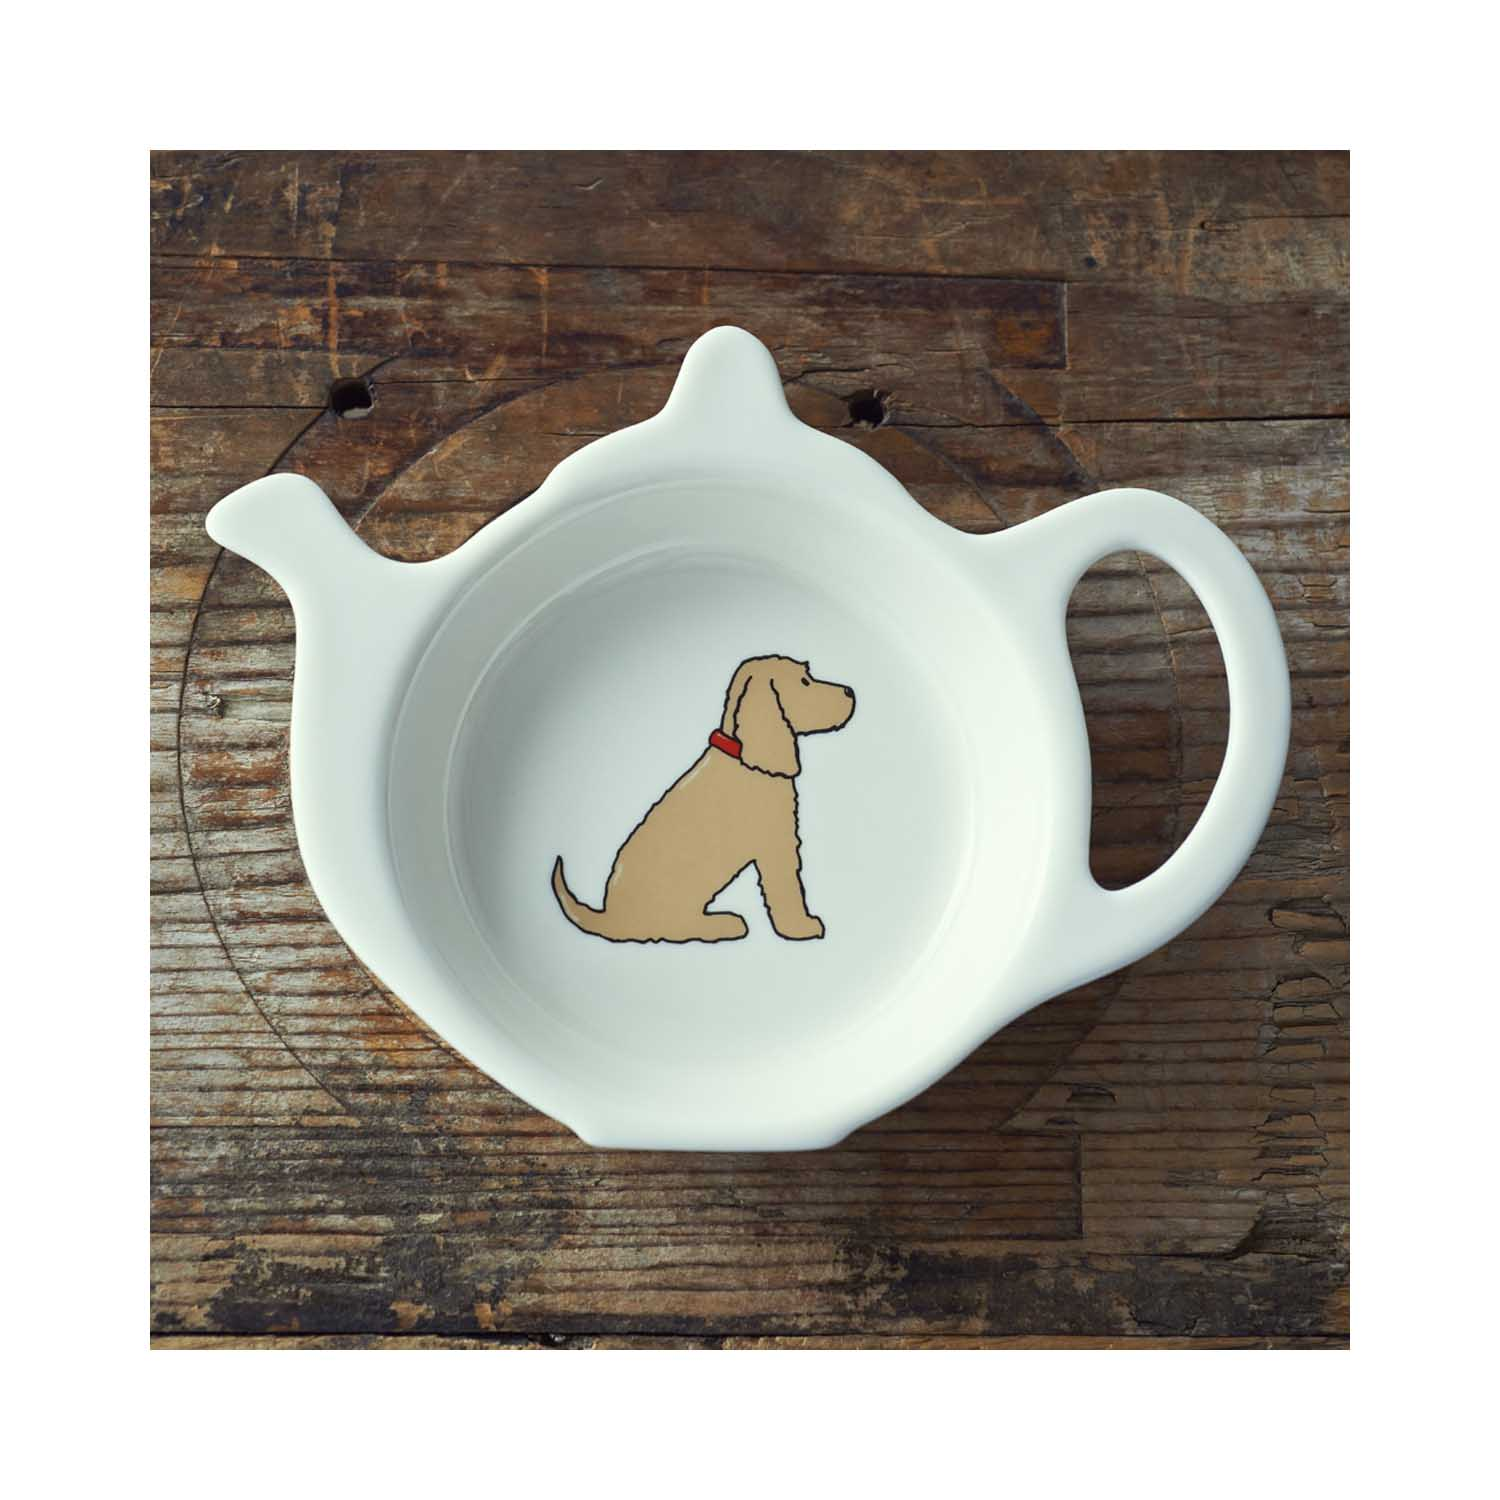 Dog Lover Gifts available at Dog Krazy Gifts - Hetty the Golden Cocker Spaniel Teabag Dish - part of the Sweet William range available from www.DogKrazyGifts.co.uk